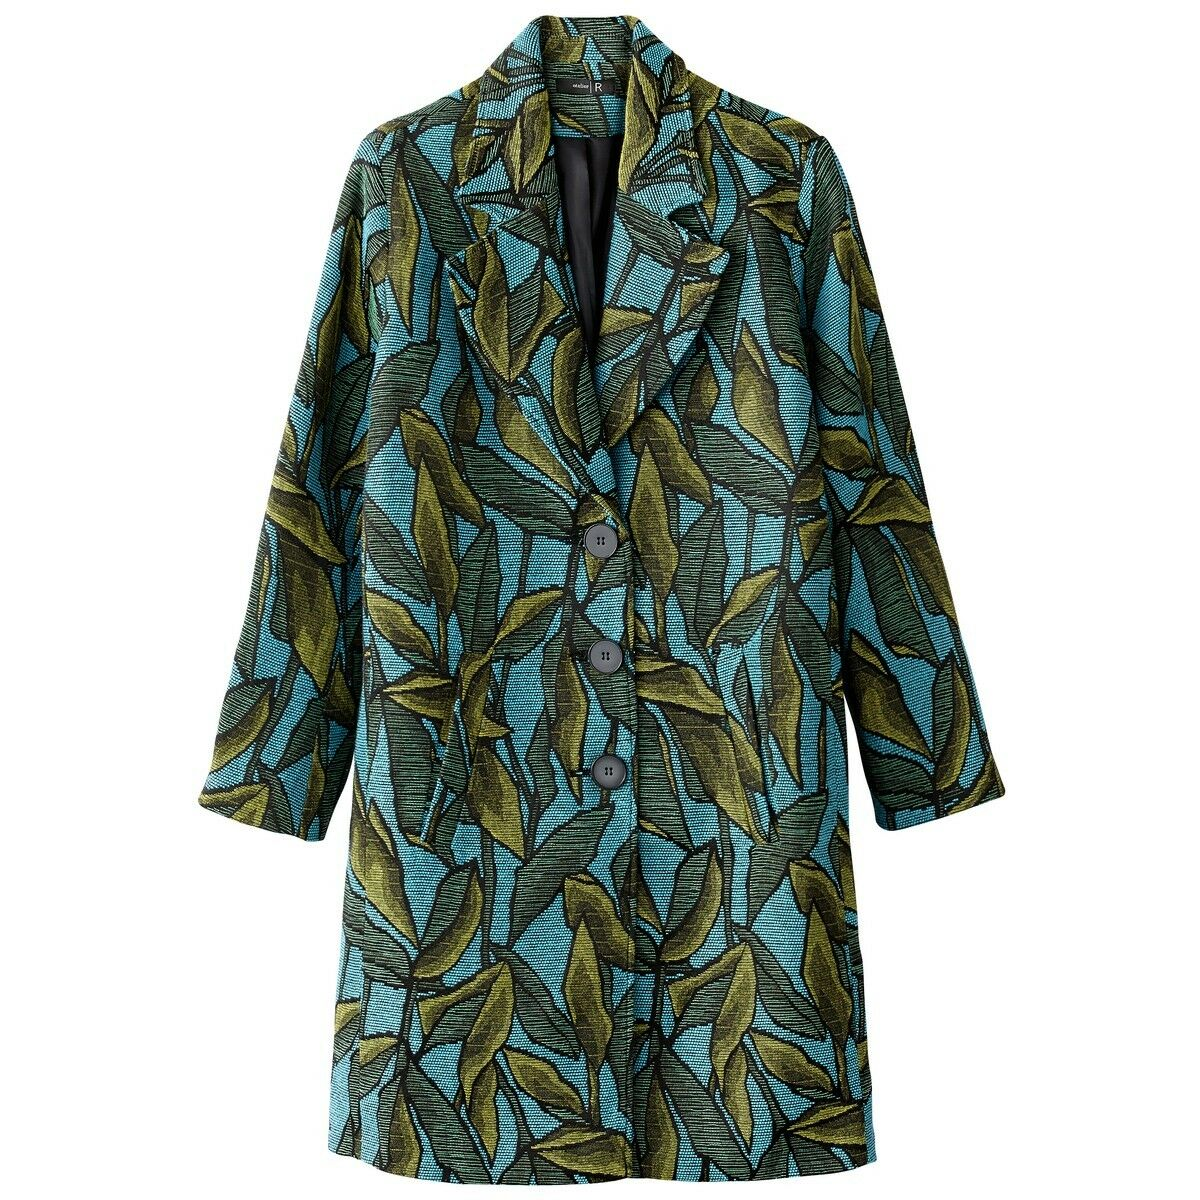 La La La Redoute Collections bluee Jacquard Leaf Print Coat - Size 6 1e3c3e